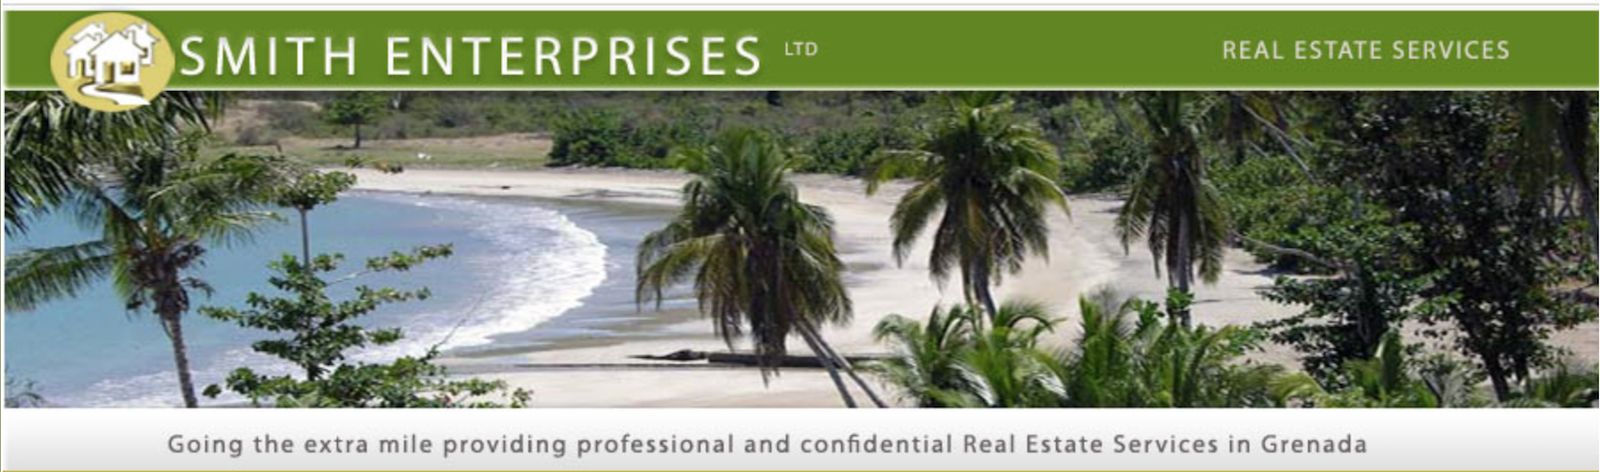 Smith Enterprises Grenada